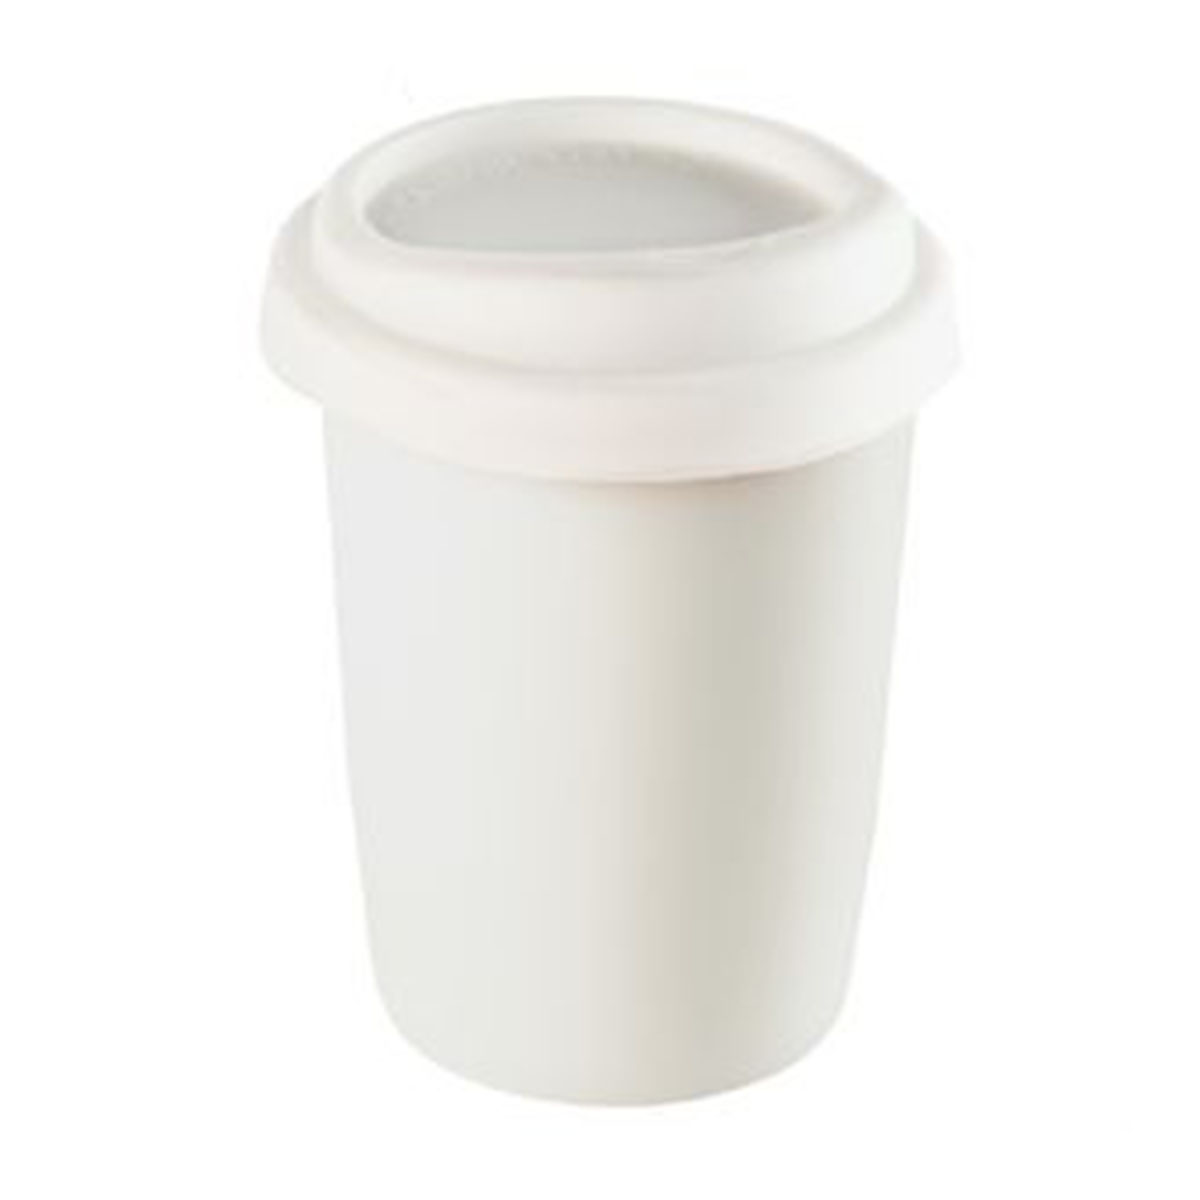 Ceramic Mug with Silicone Lid-White with White Lid.